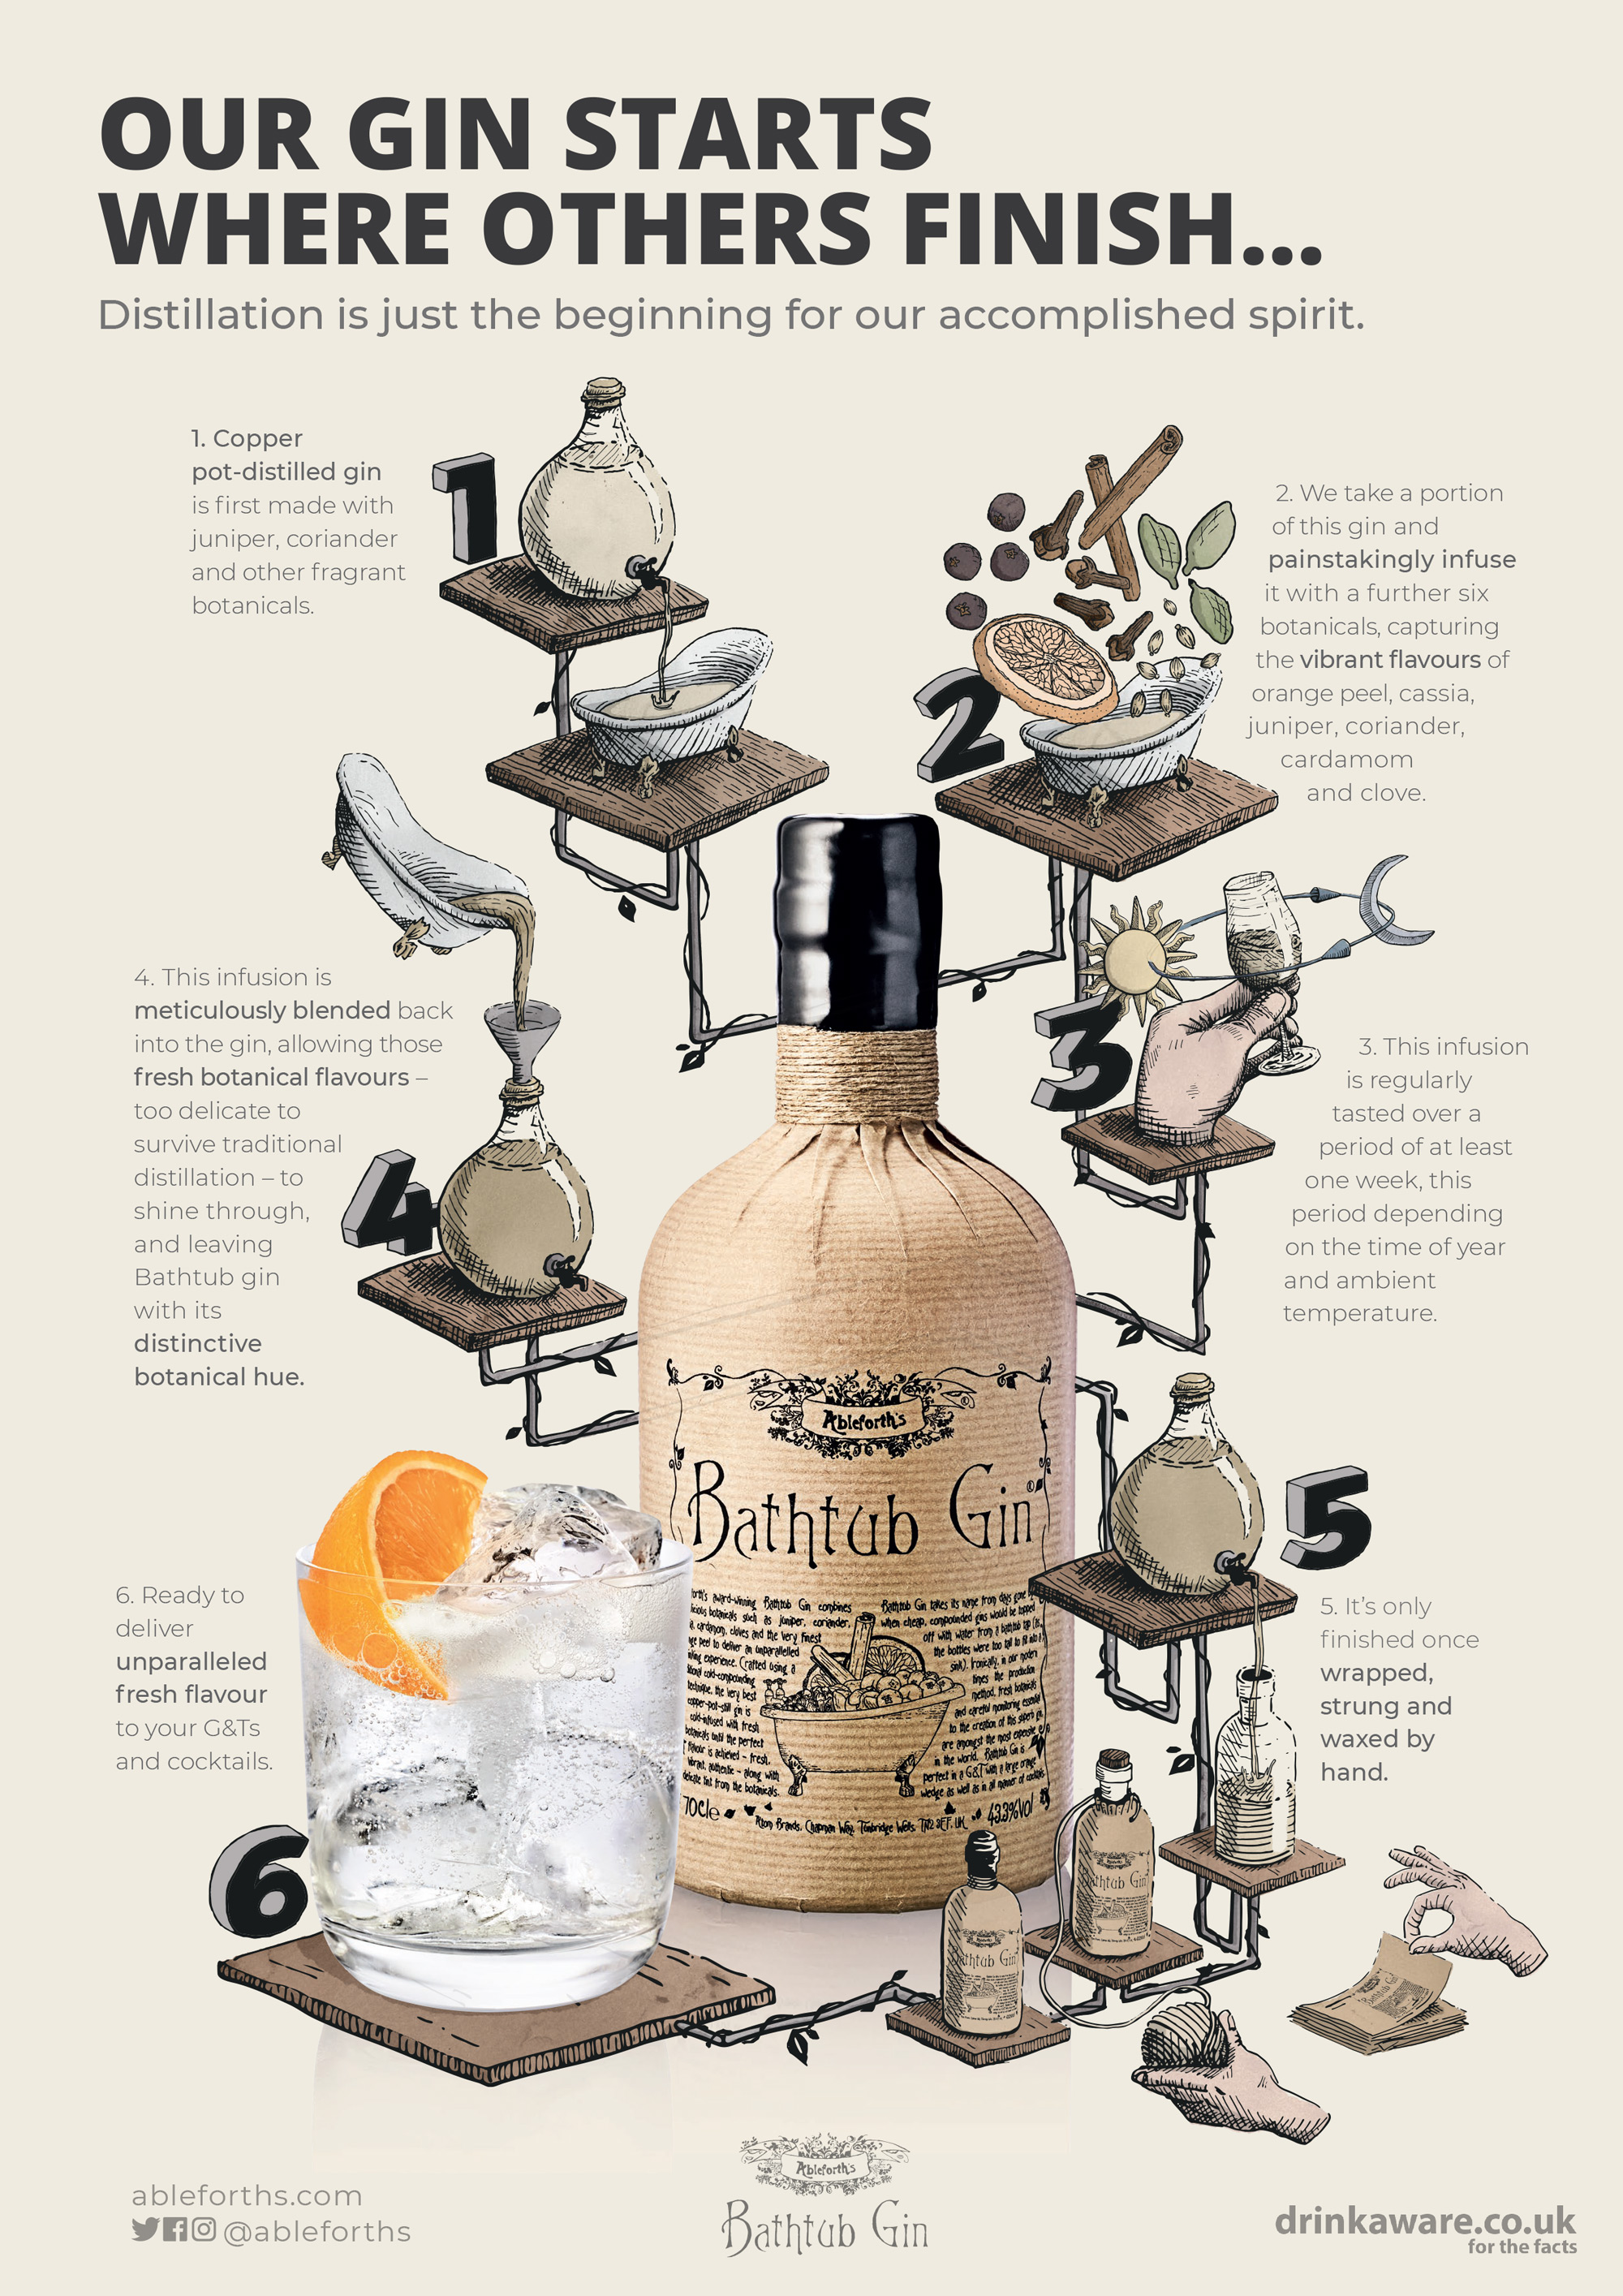 Ableforths Bathtub Gin infographic creative